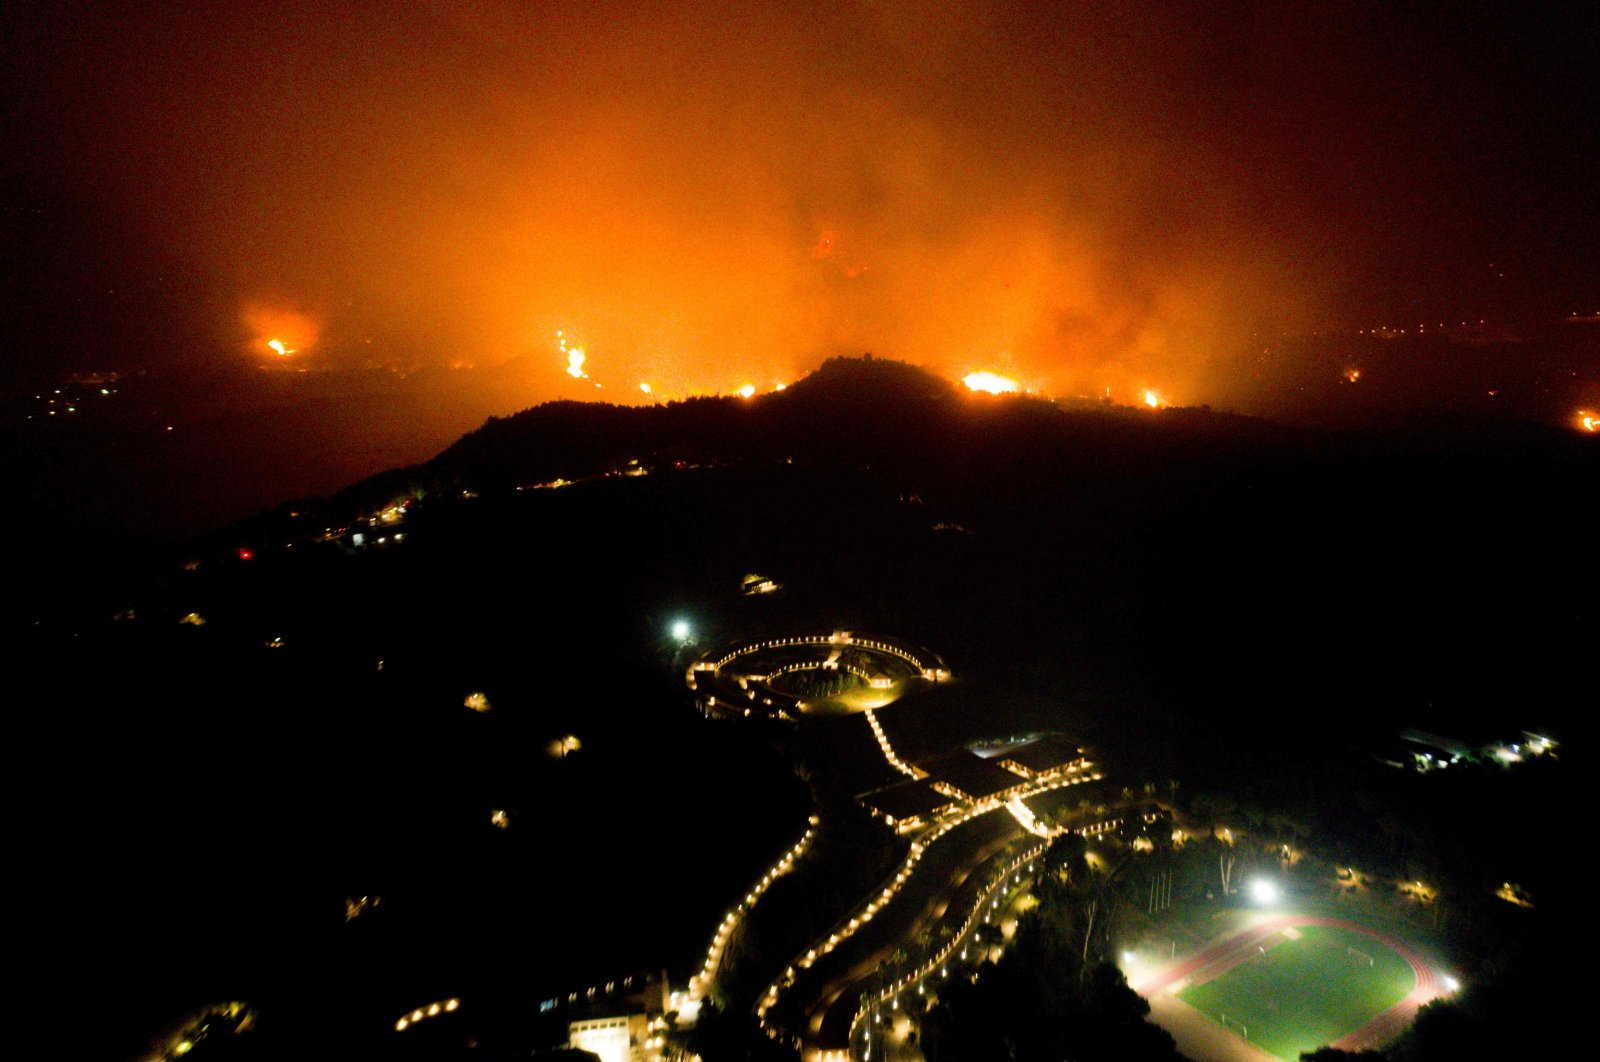 A wildfire approaches the Olympic Academy in ancient Olympia in western Greece on Aug. 4, 2021. (AFP Photo)